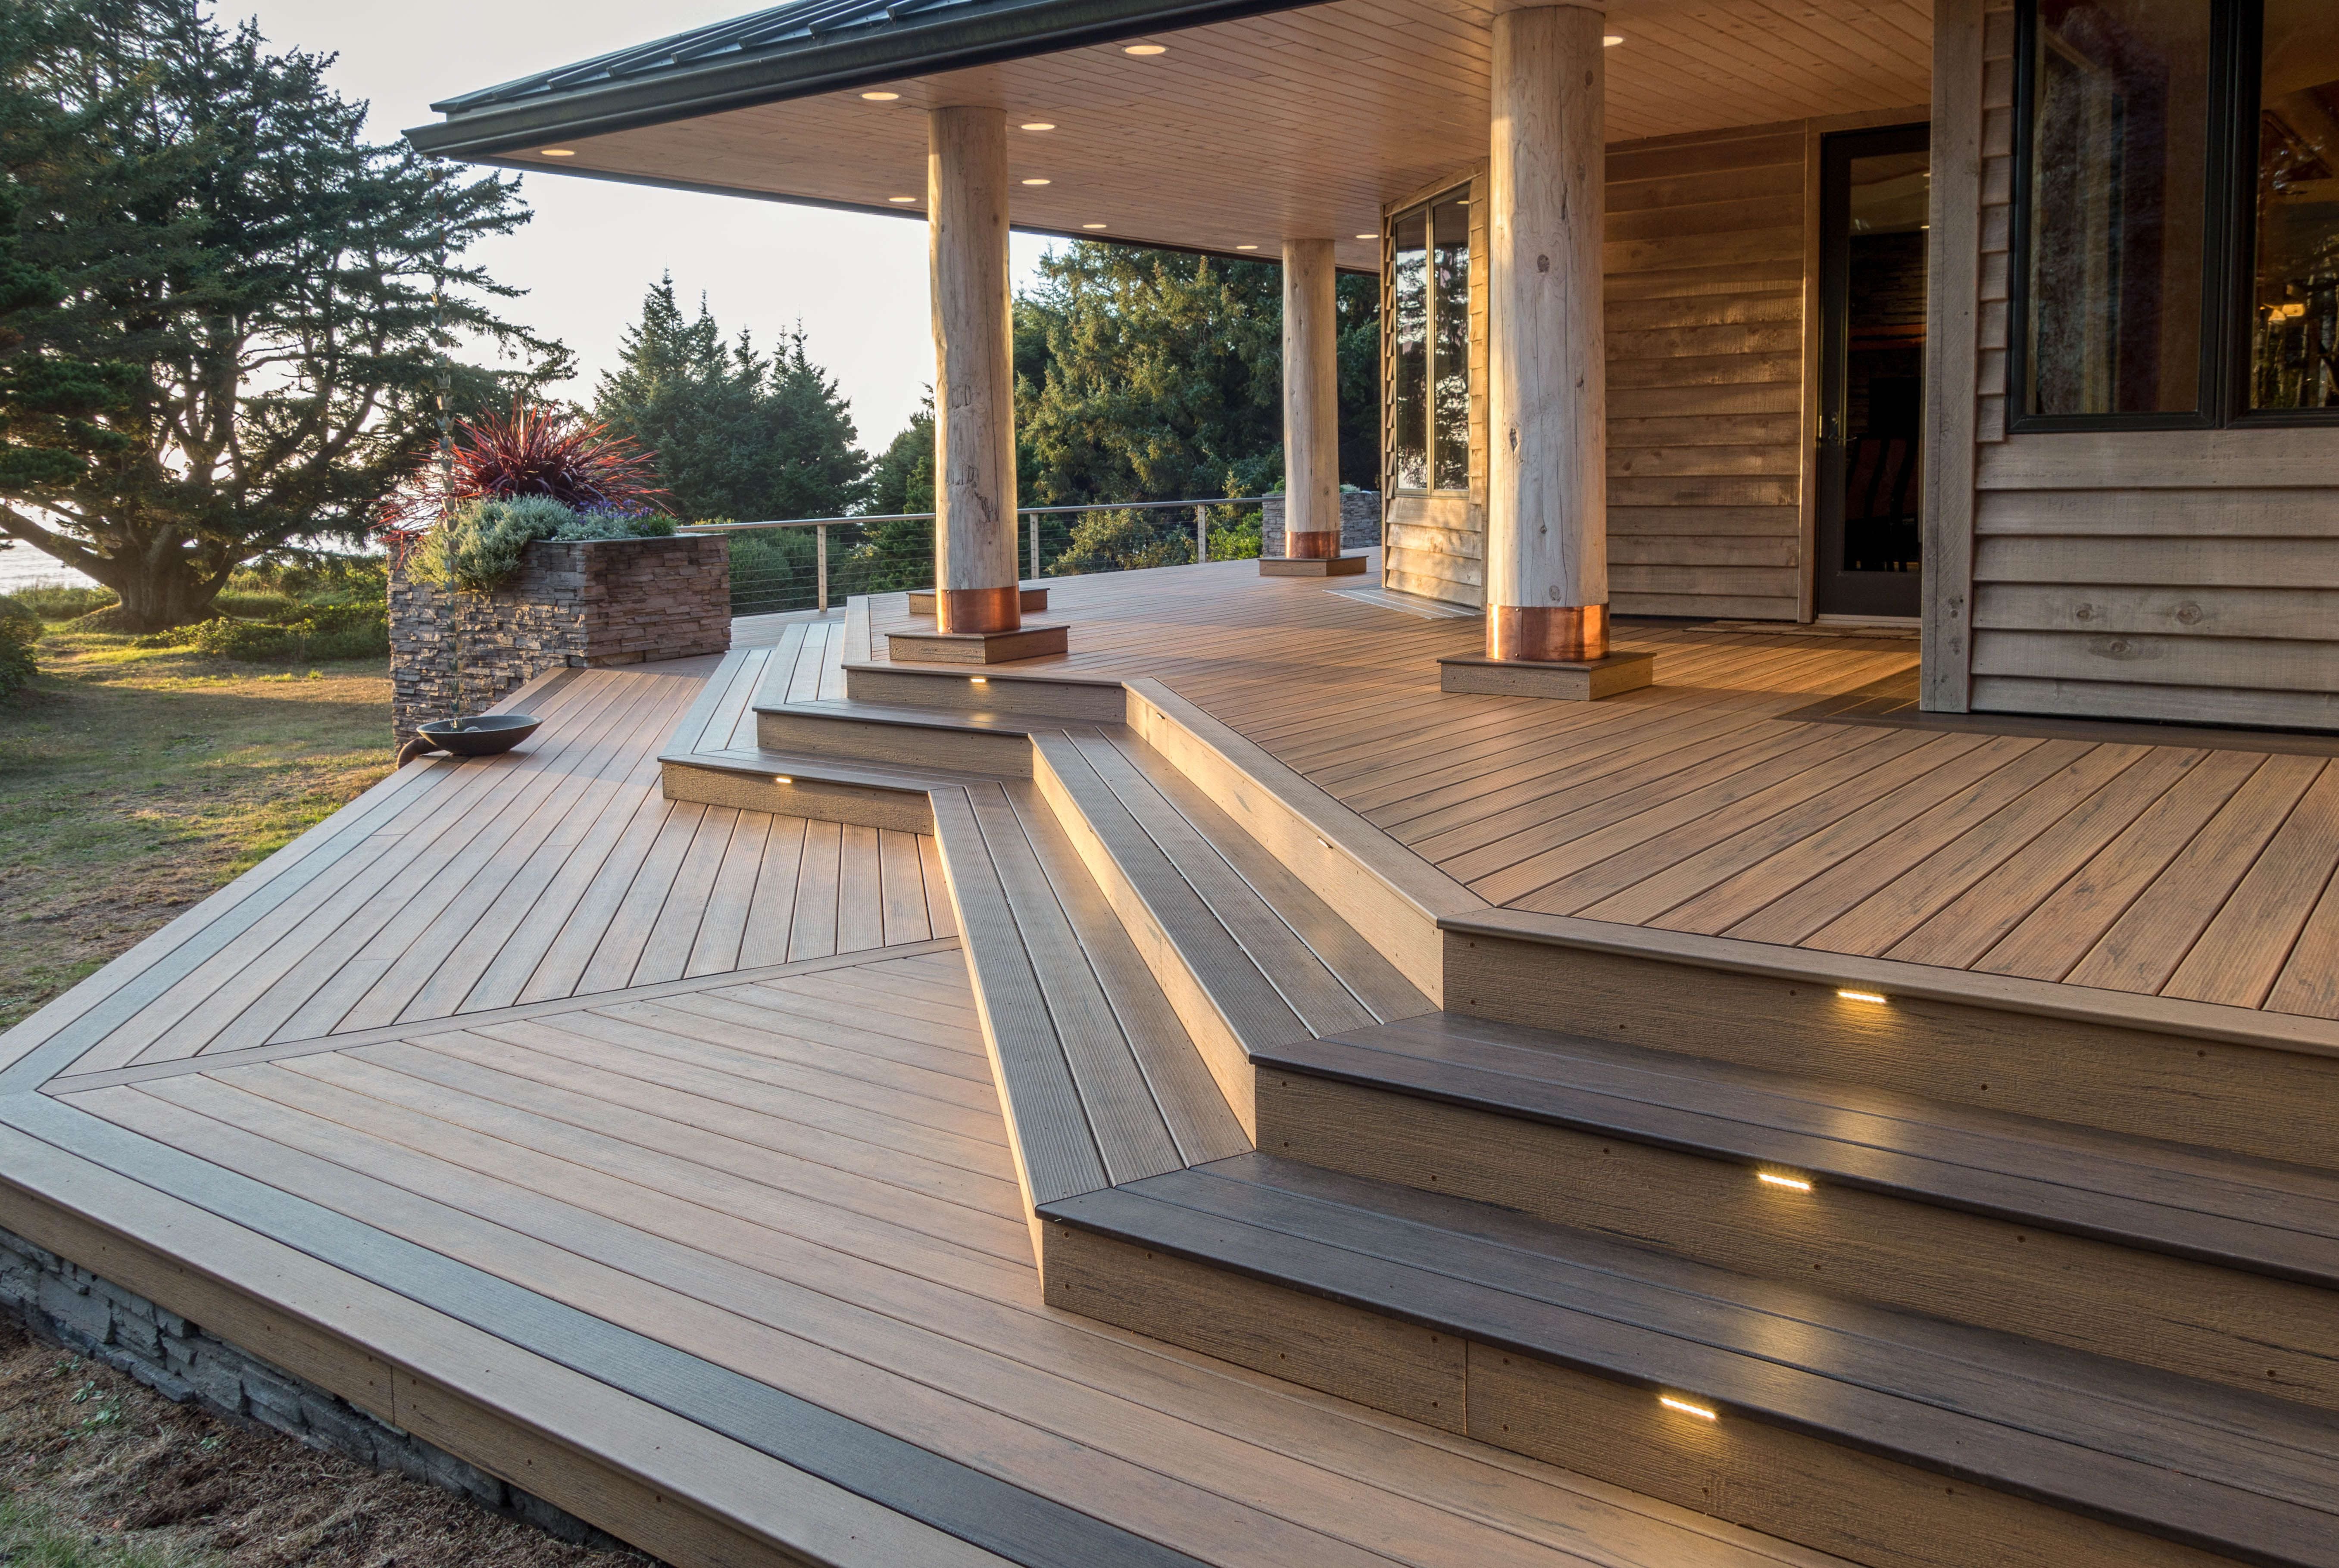 Make Your Backyard One To Remember With A Timbertechdeck Timbertech Decking In Tigerwood From Our Legacy Collect Building A Deck Decks Backyard Deck Lighting